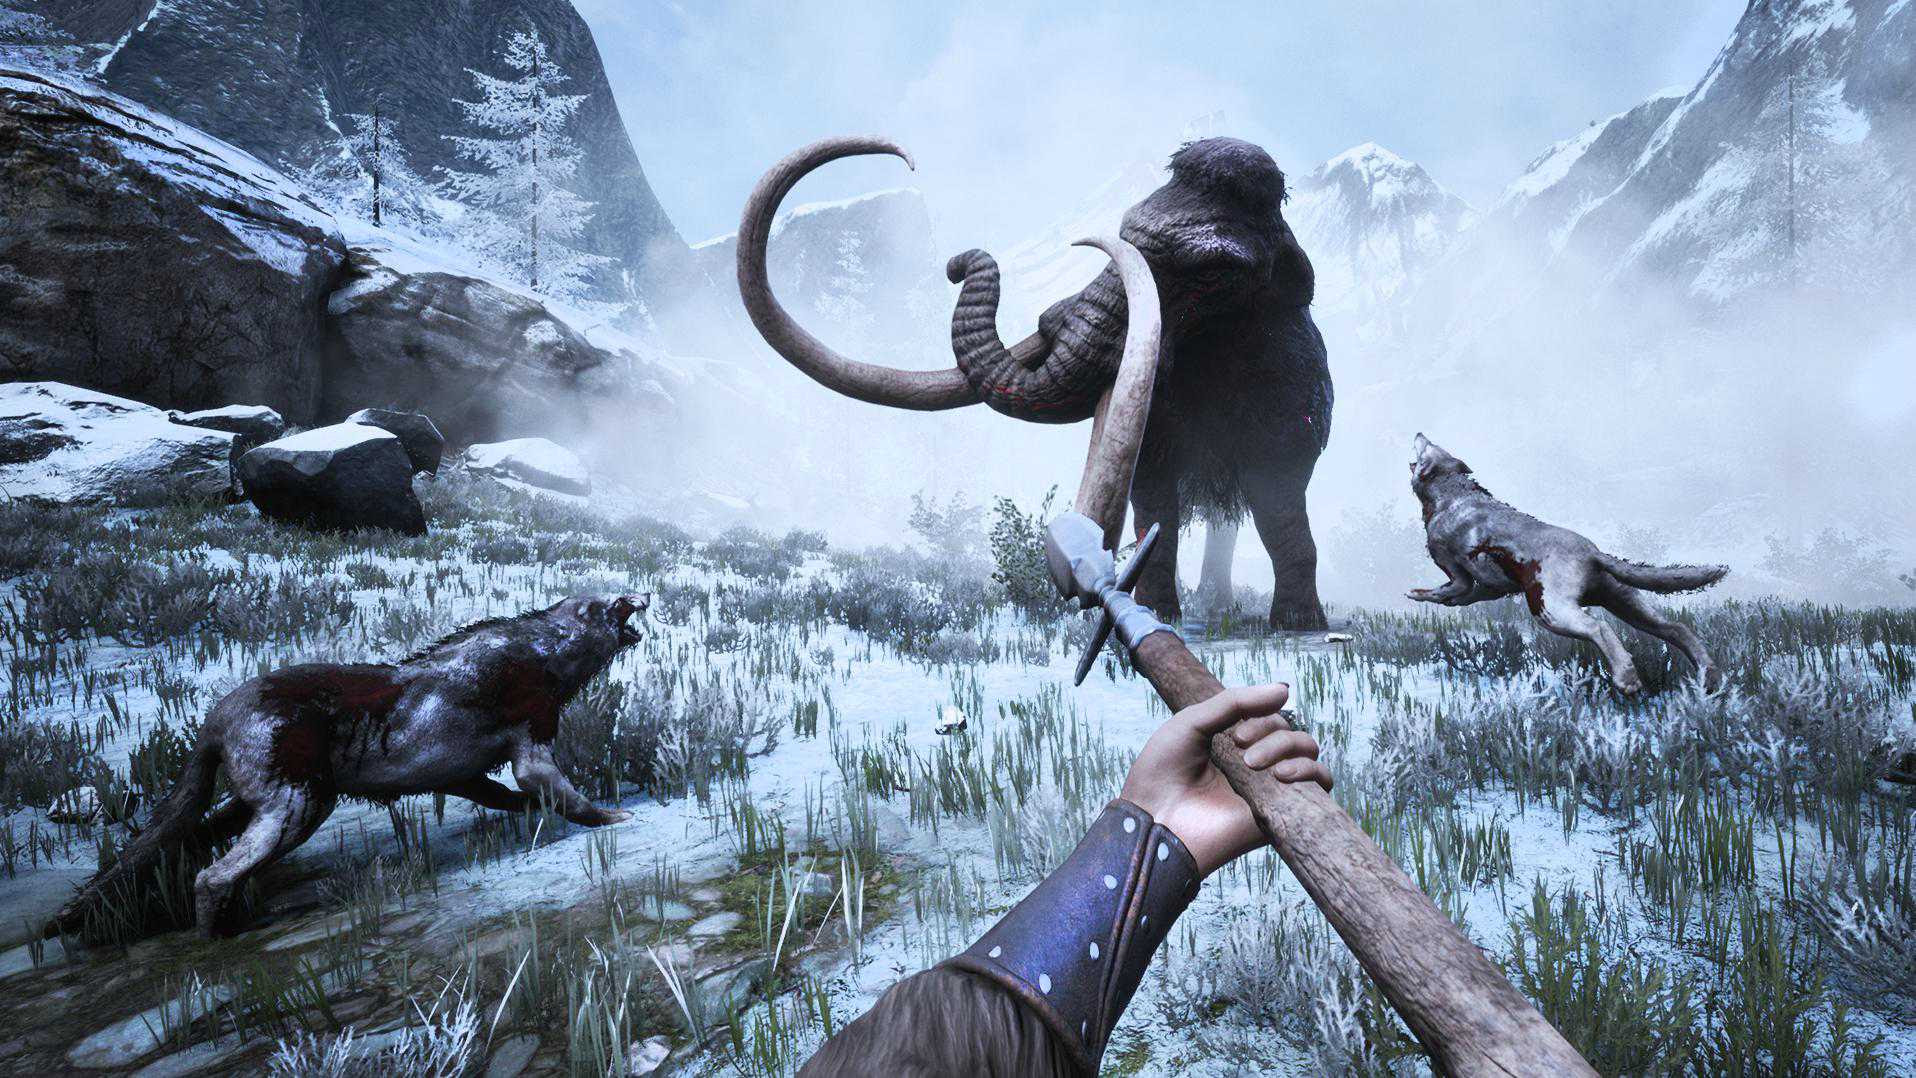 Conan Exiles free 'Frozen North' expansion release date set